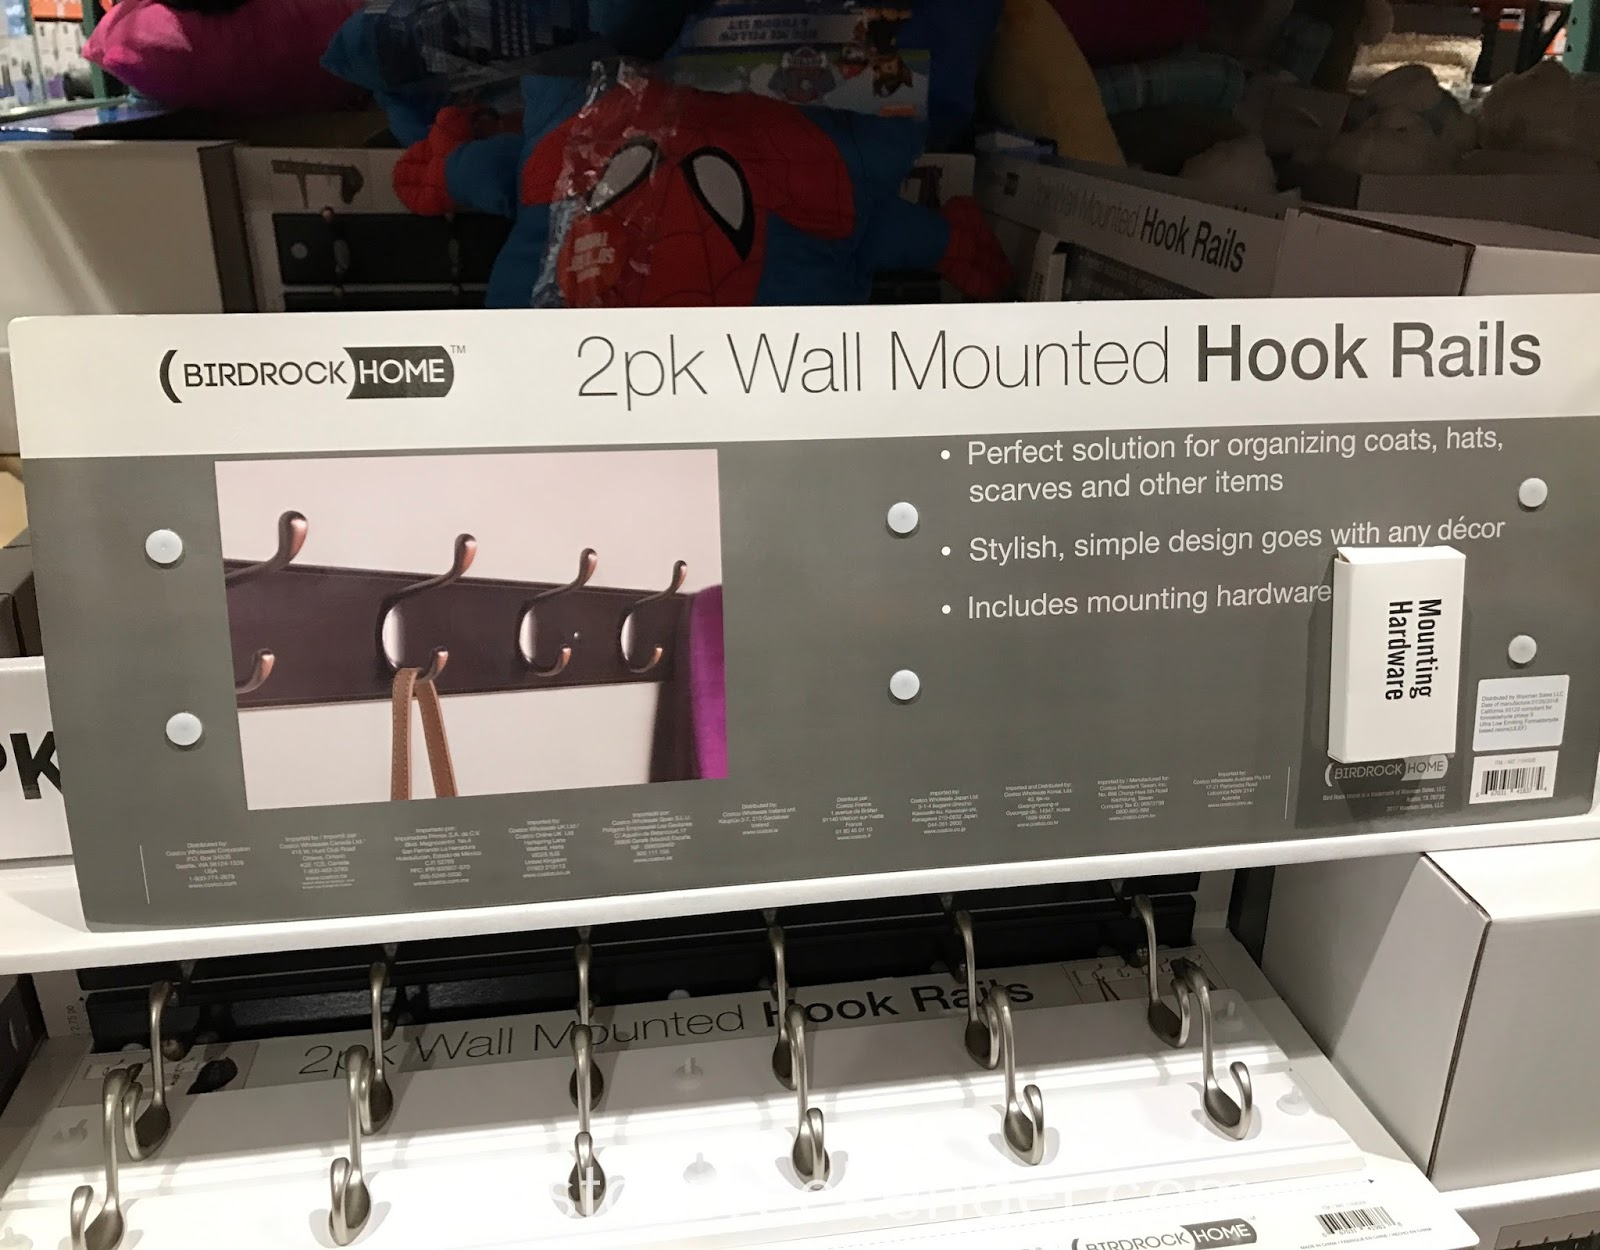 Costco 1164508 - Birdrock Home Wall Mounted Hook Rails: practical and great for any home